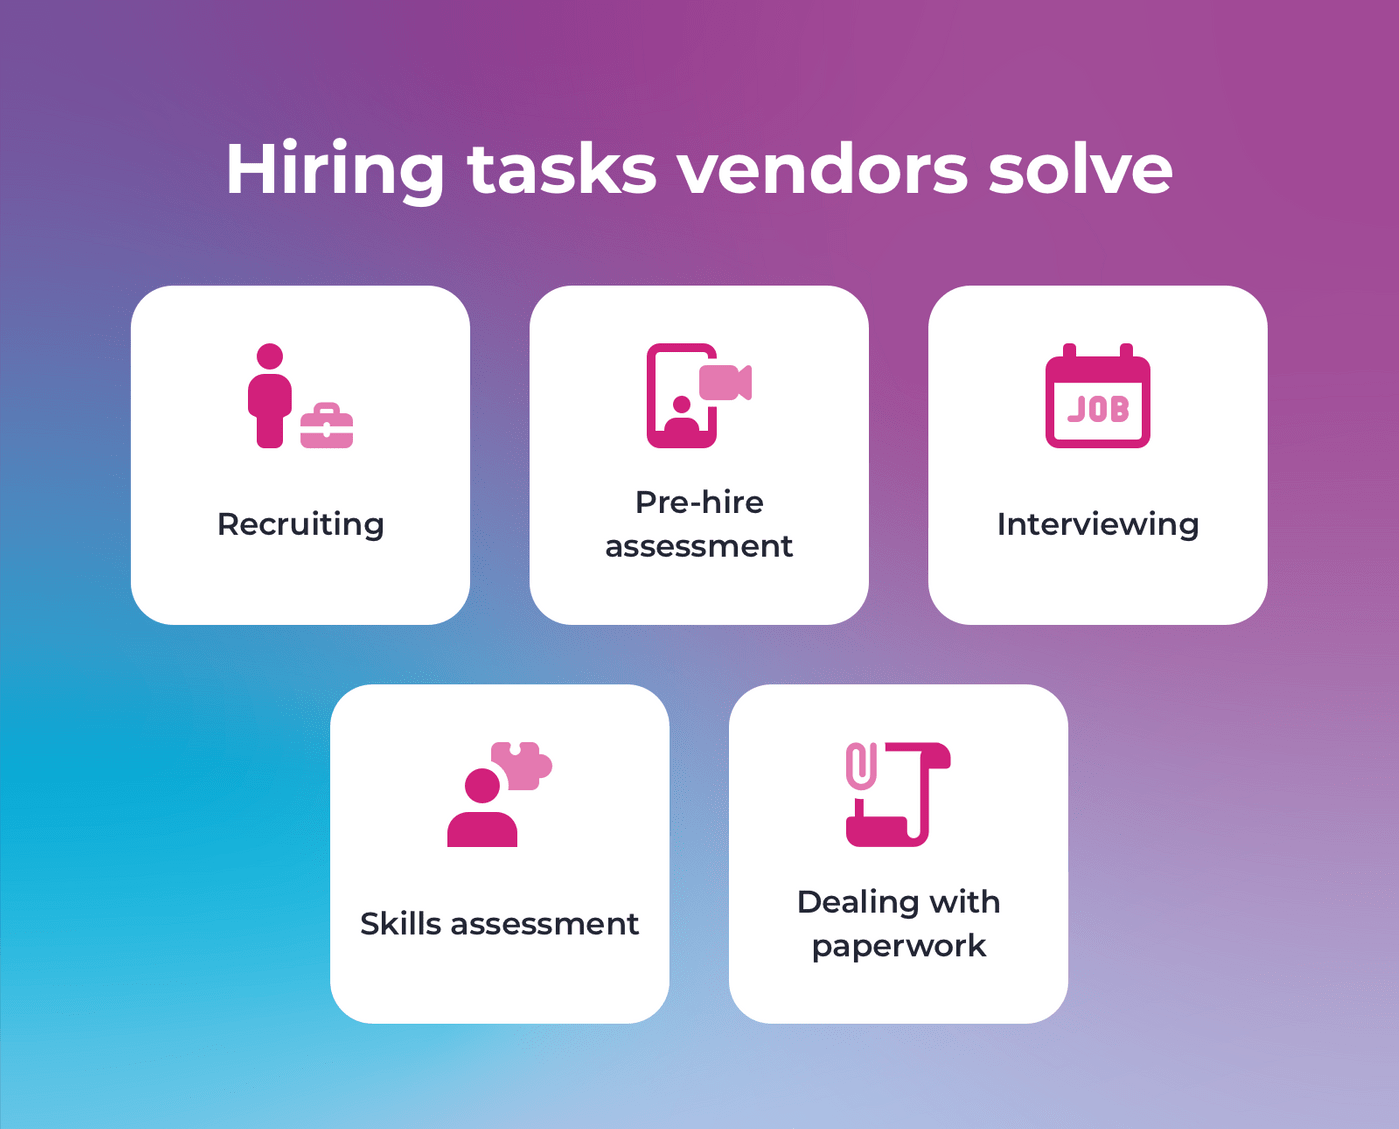 Dedicated team model: hiring tasks solved by vendor